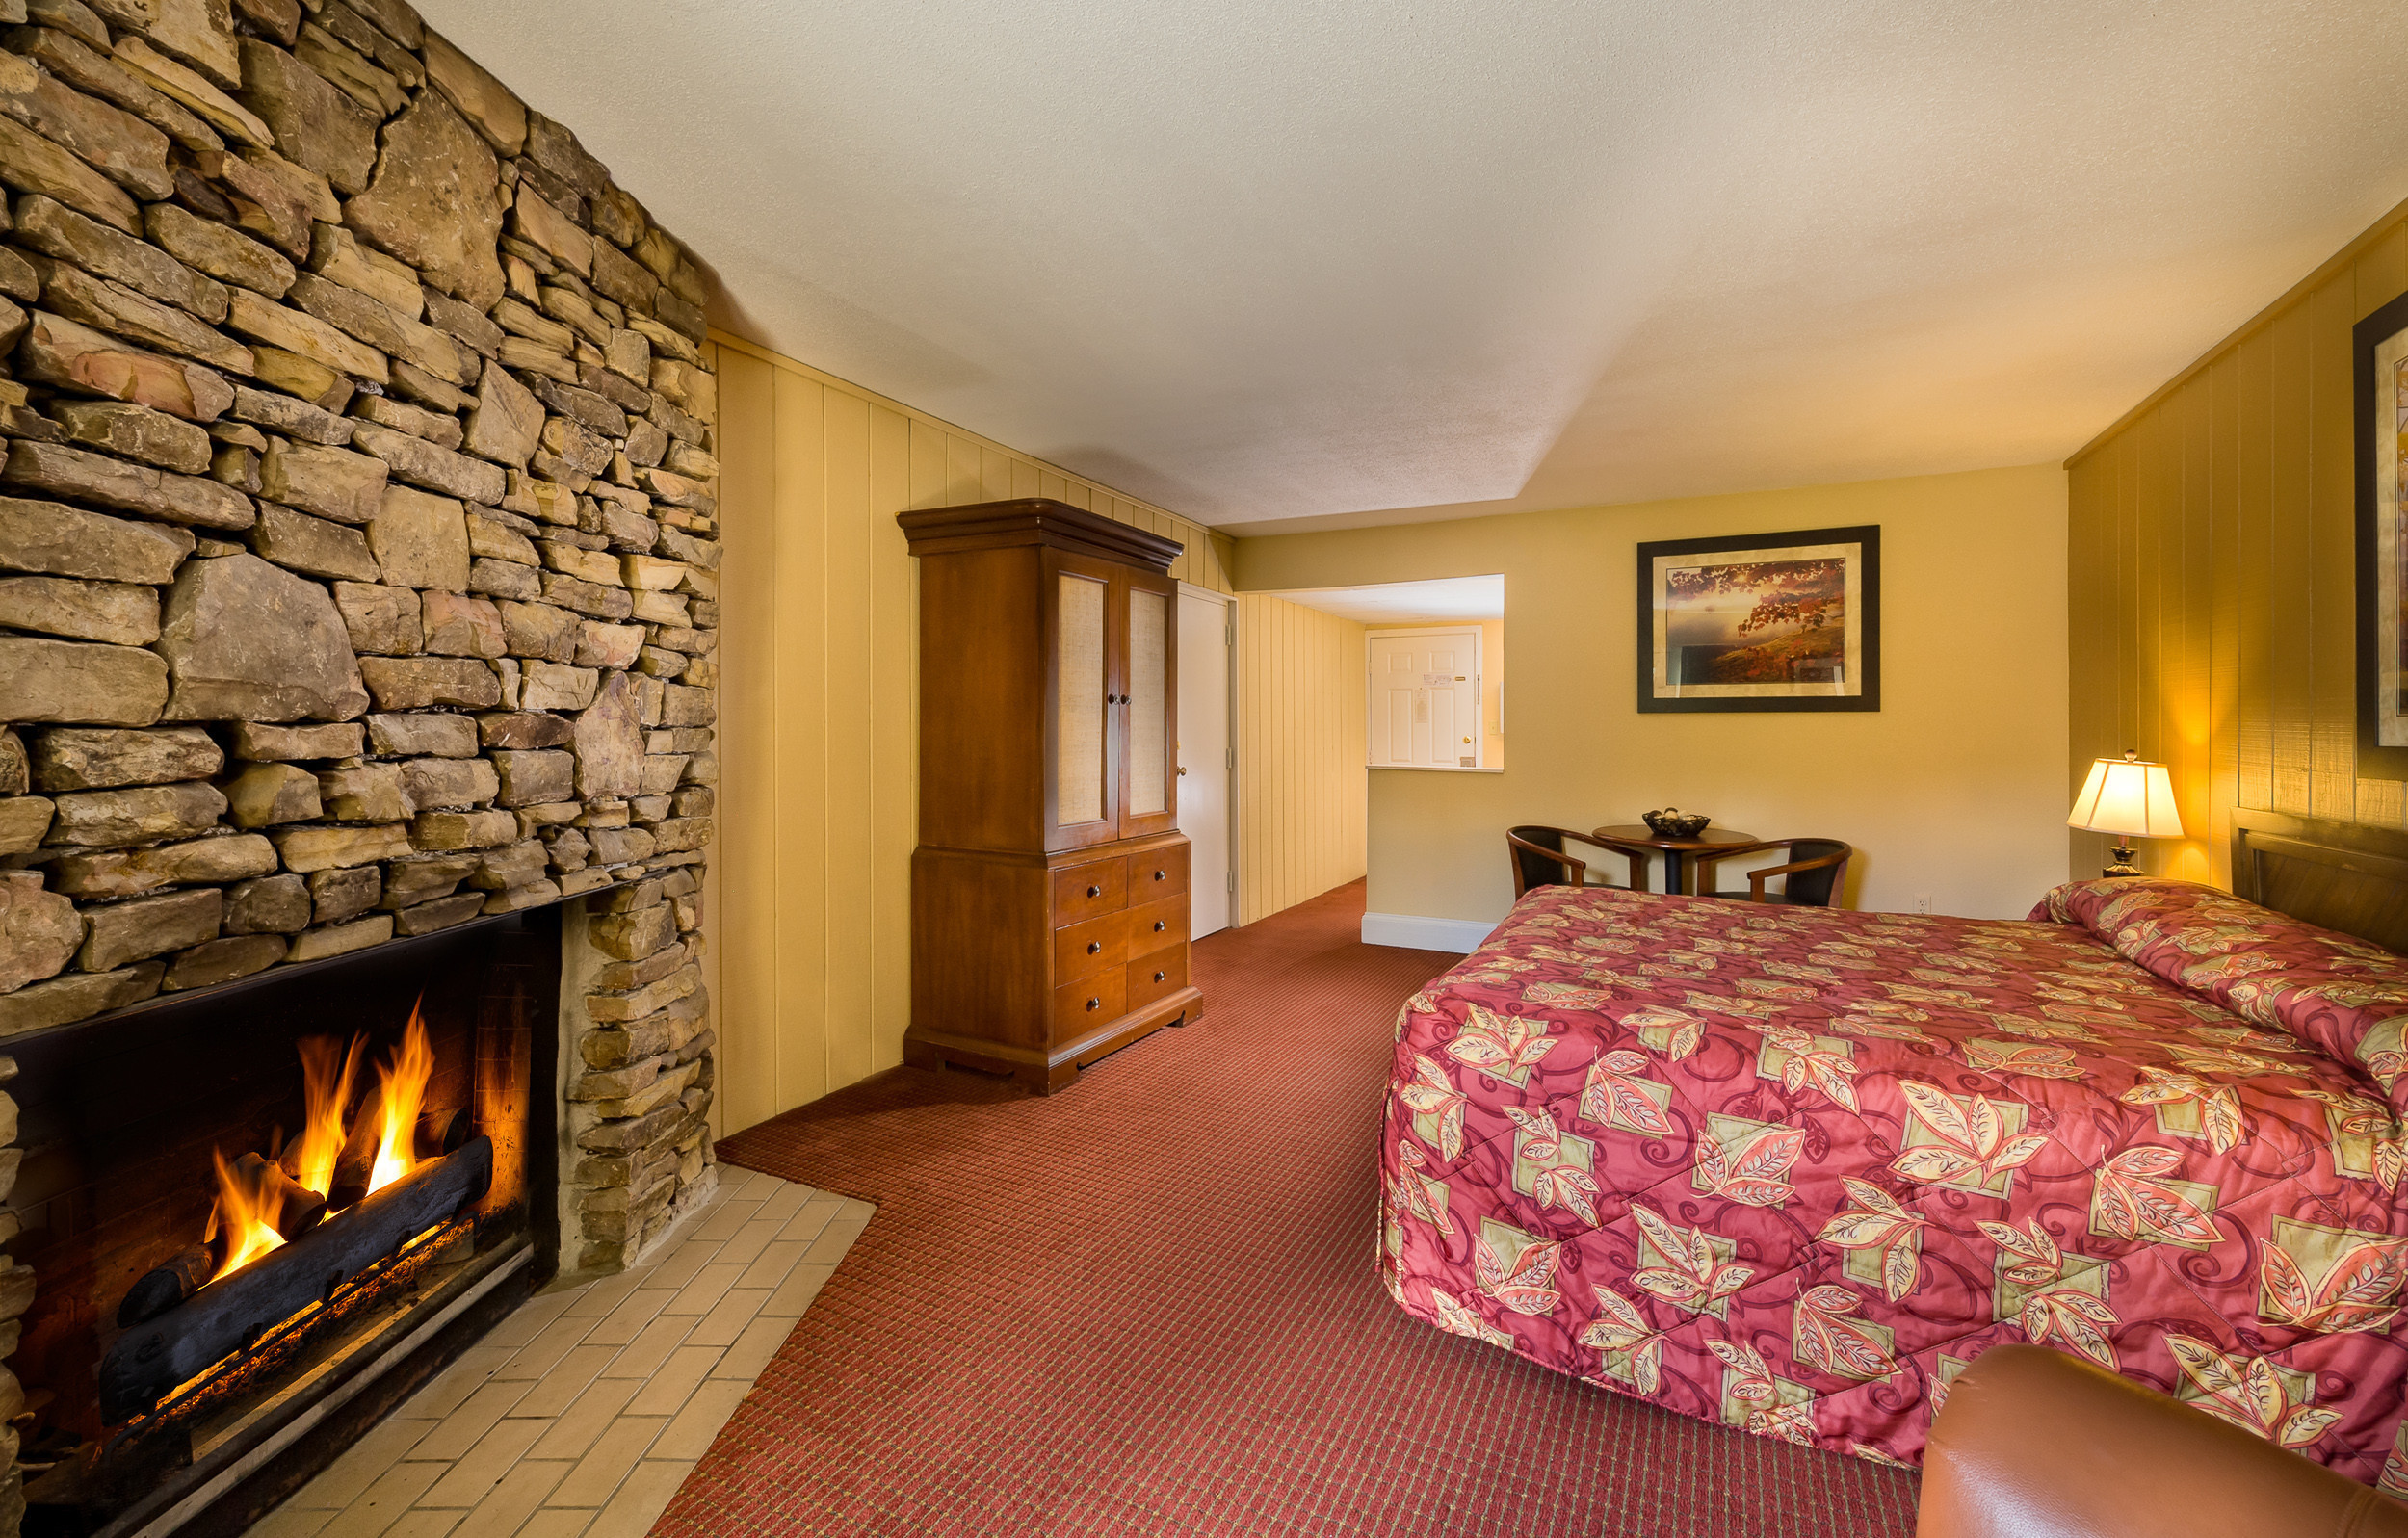 Fireplace and King Bed in Standard King Room | River Terrace Resort & Convention Center | Westgate Resorts